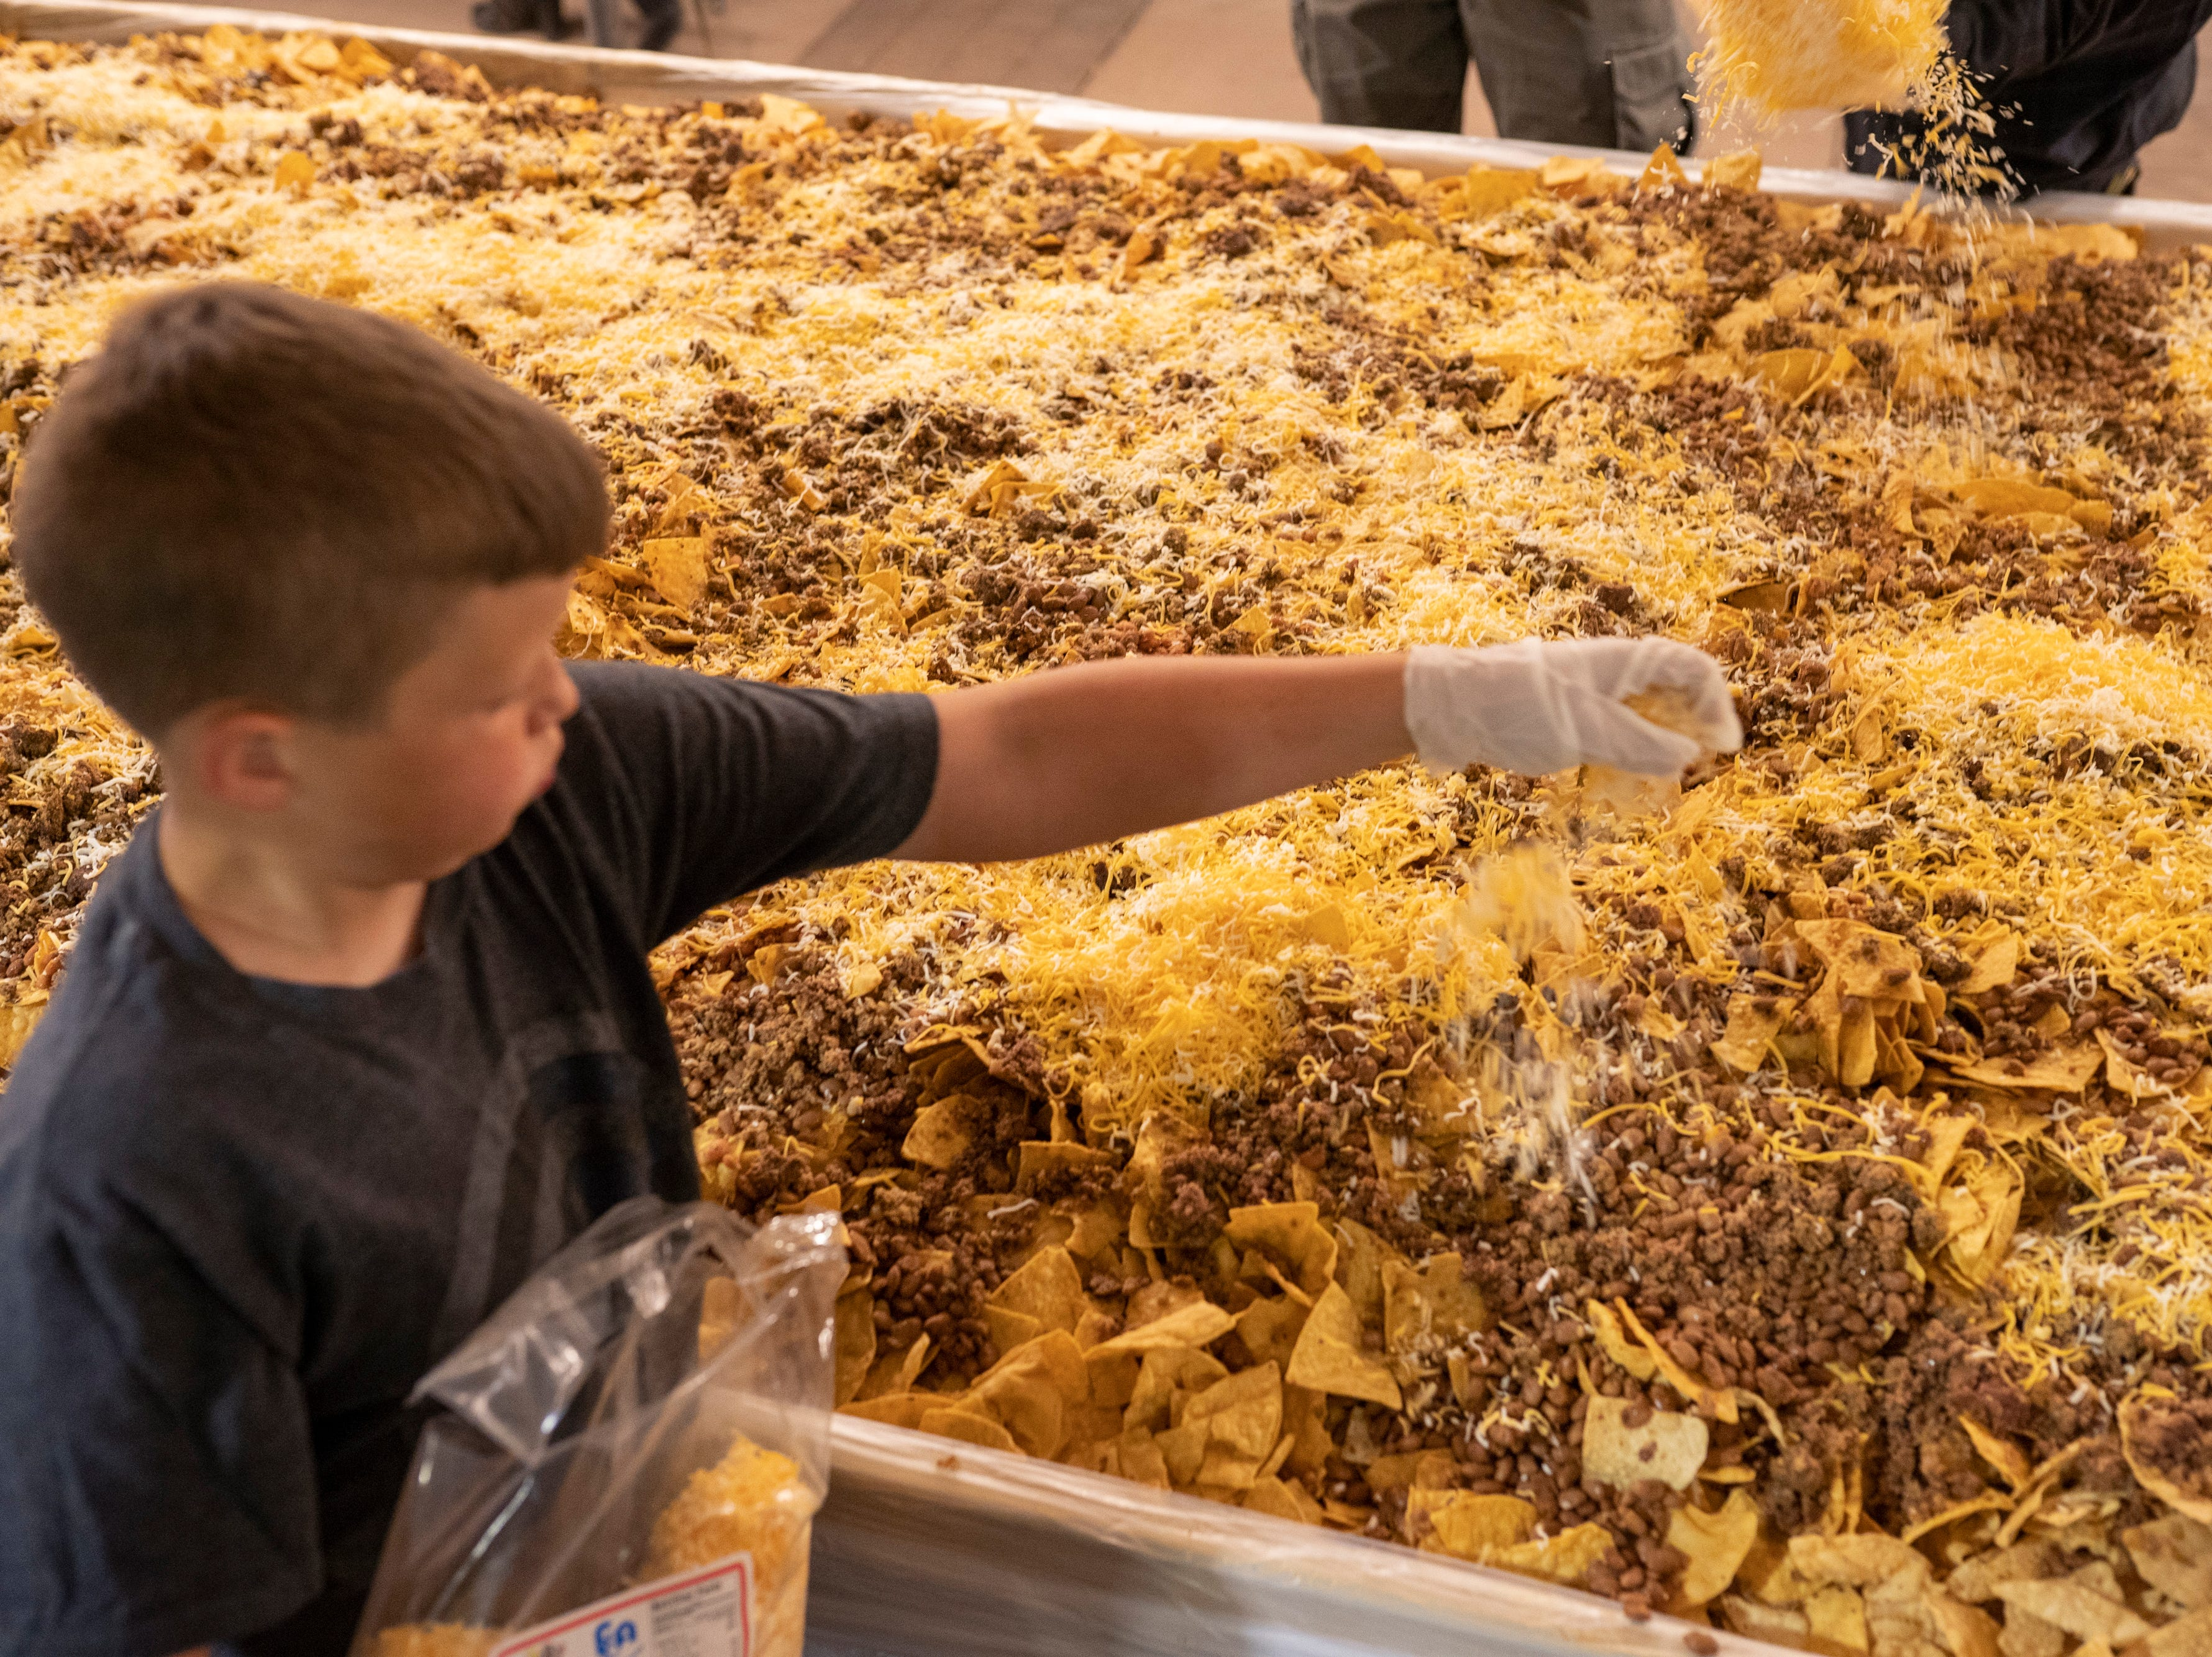 Weston Marr, 9, puts cheese on top of the nachos at Noche de Nachos. Las Cruces unofficially set the record for world's largest serving of nachos Saturday, Nov. 10, 2018, in downtown Las Cruces.